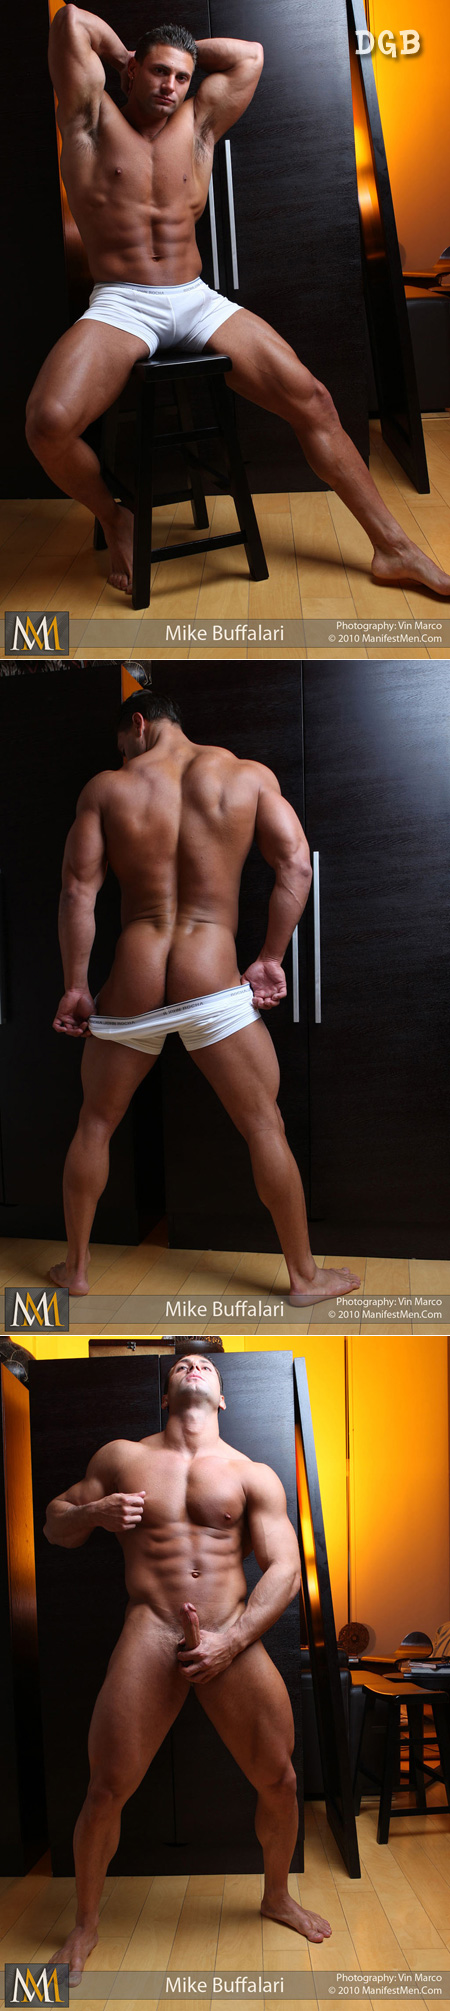 Tan, smooth and loaded with big muscles, Mike Buffalari in his boxer briefs is definitely worth worshipping.